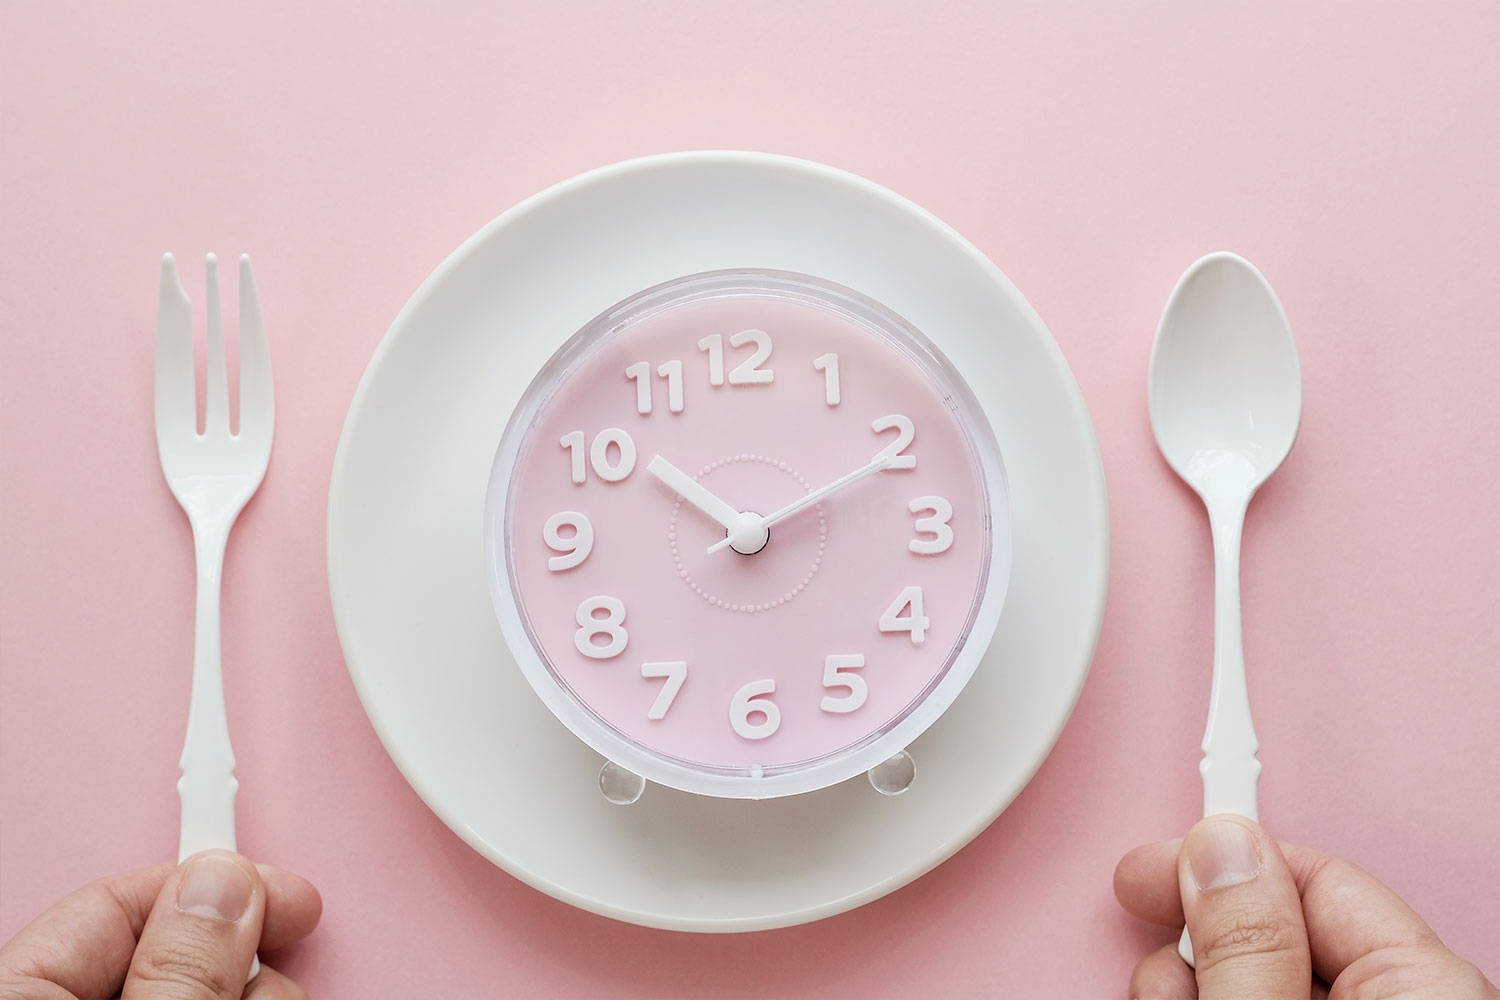 Why Intermittent Fasting Works